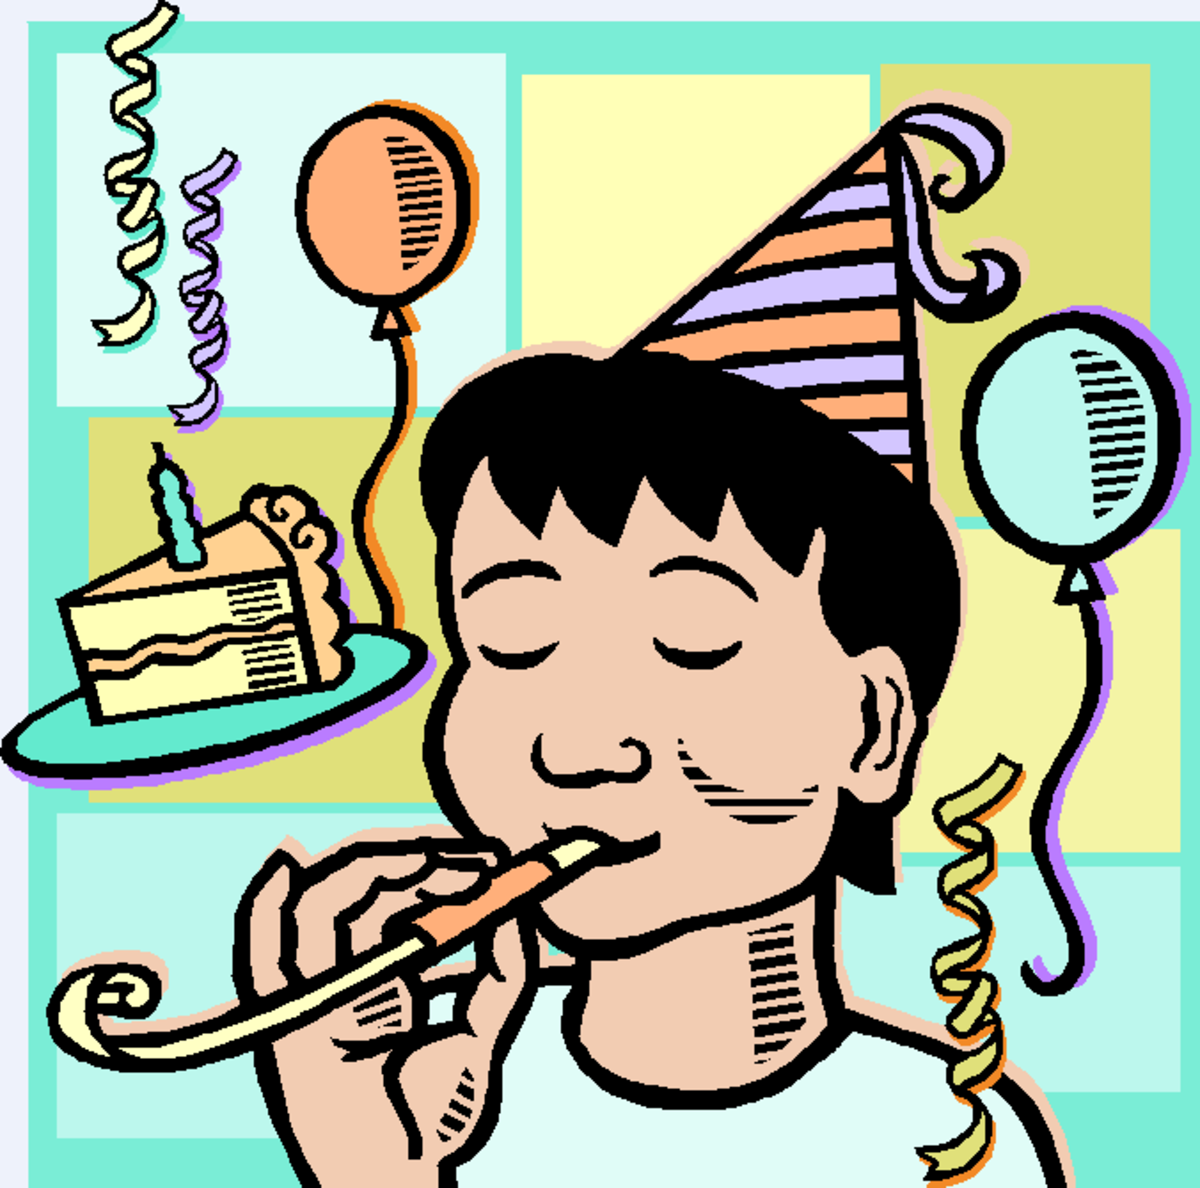 Boy Wearing Party Hat Blowing Noise Maker with Balloons and Piece of Birthday CAke